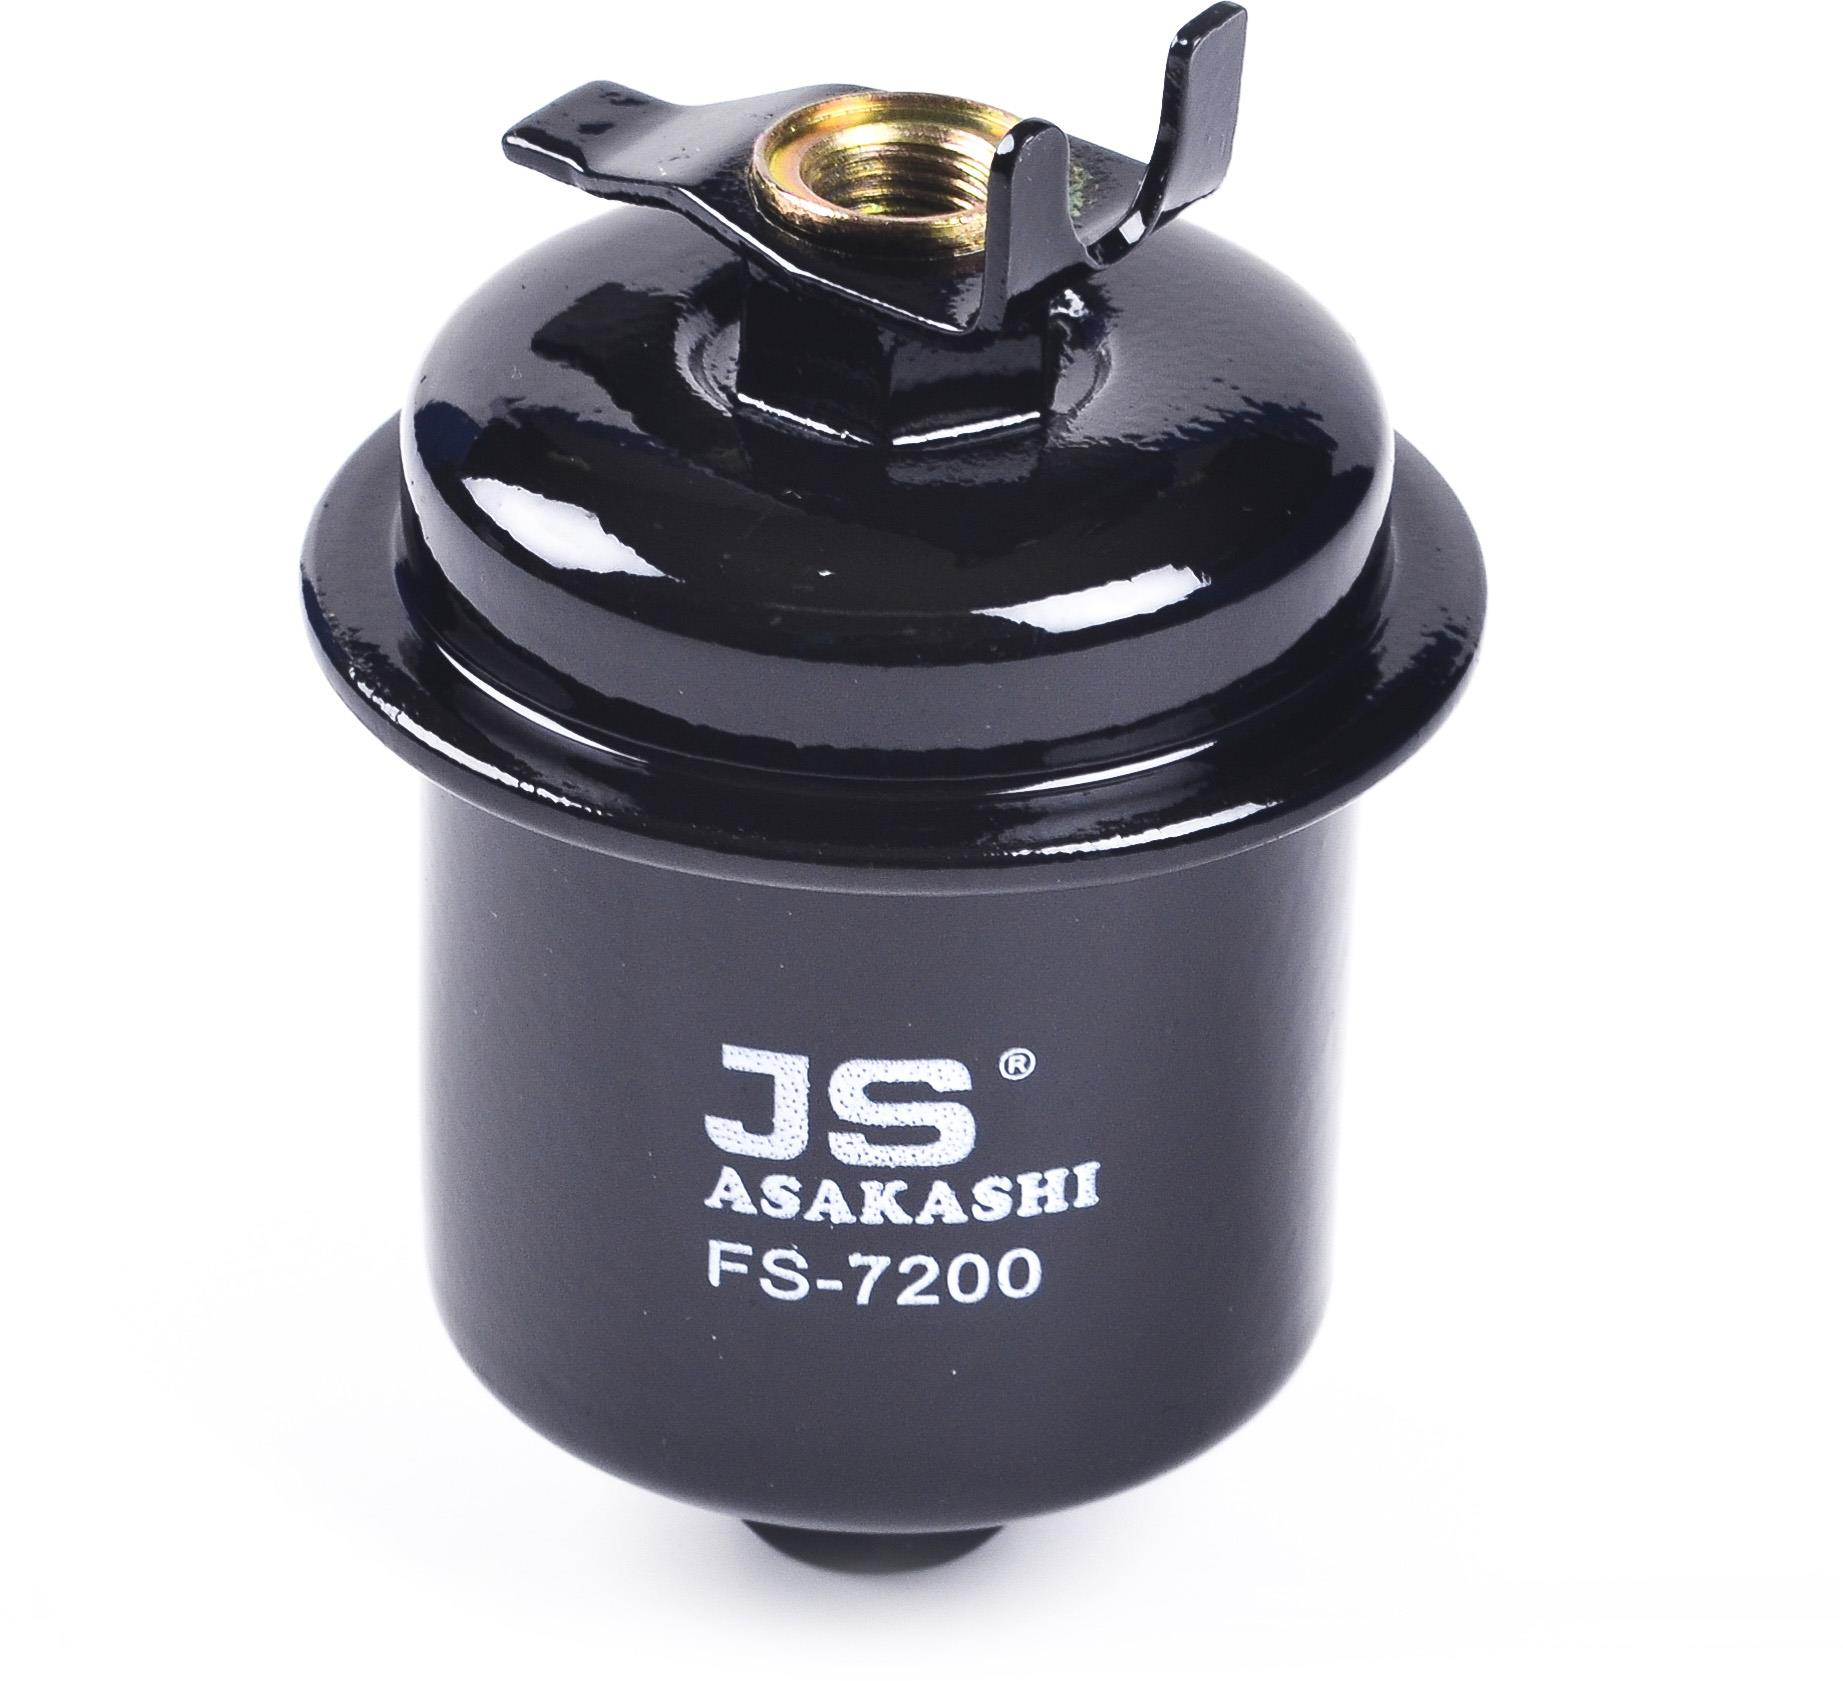 Fs28200 Fs1607 Fuel Filter Honda Civic Accord Prelude Integra 16010 2012 Ford Fiesta St5 931 Fs 1607 Release Product 932